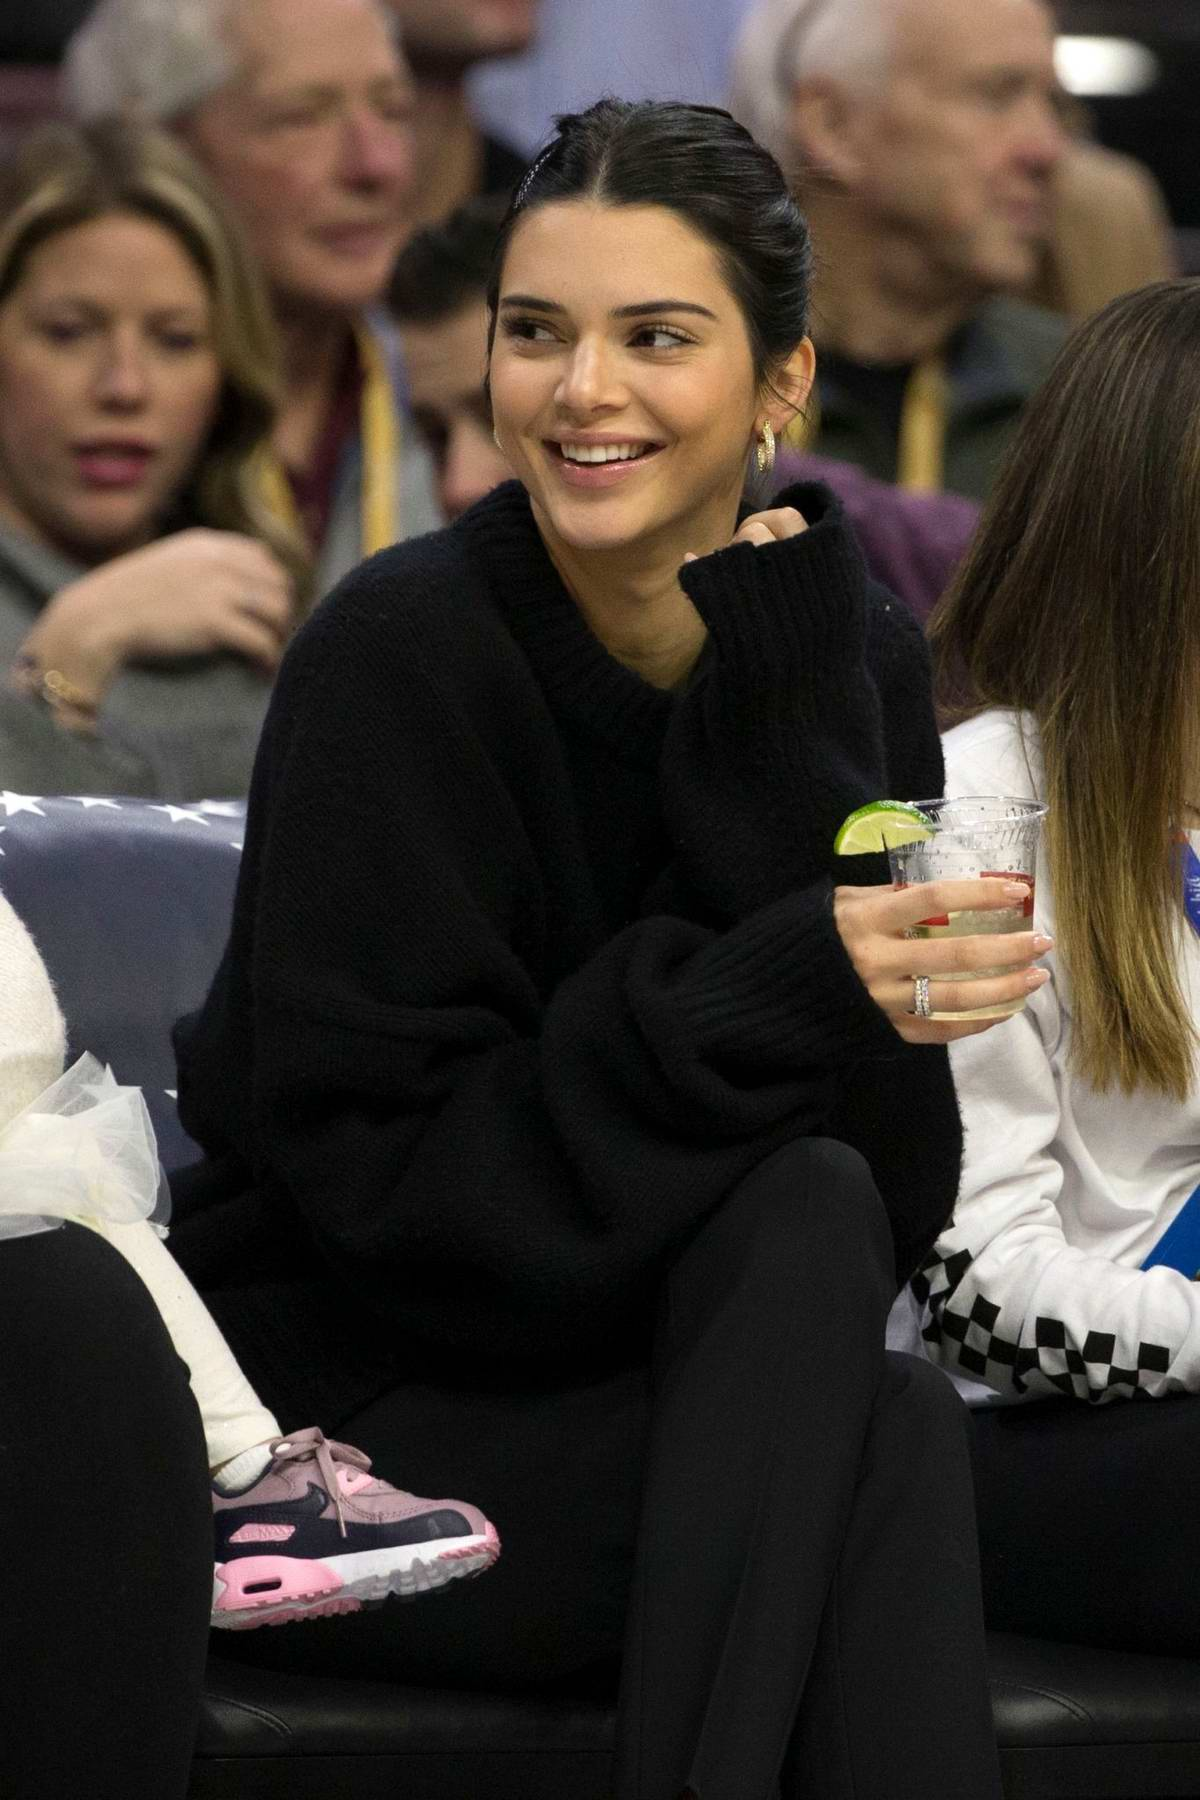 Kendall Jenner spotted courtside during the Cleveland Cavaliers vs Philadelphia 76ers game in Philadelphia